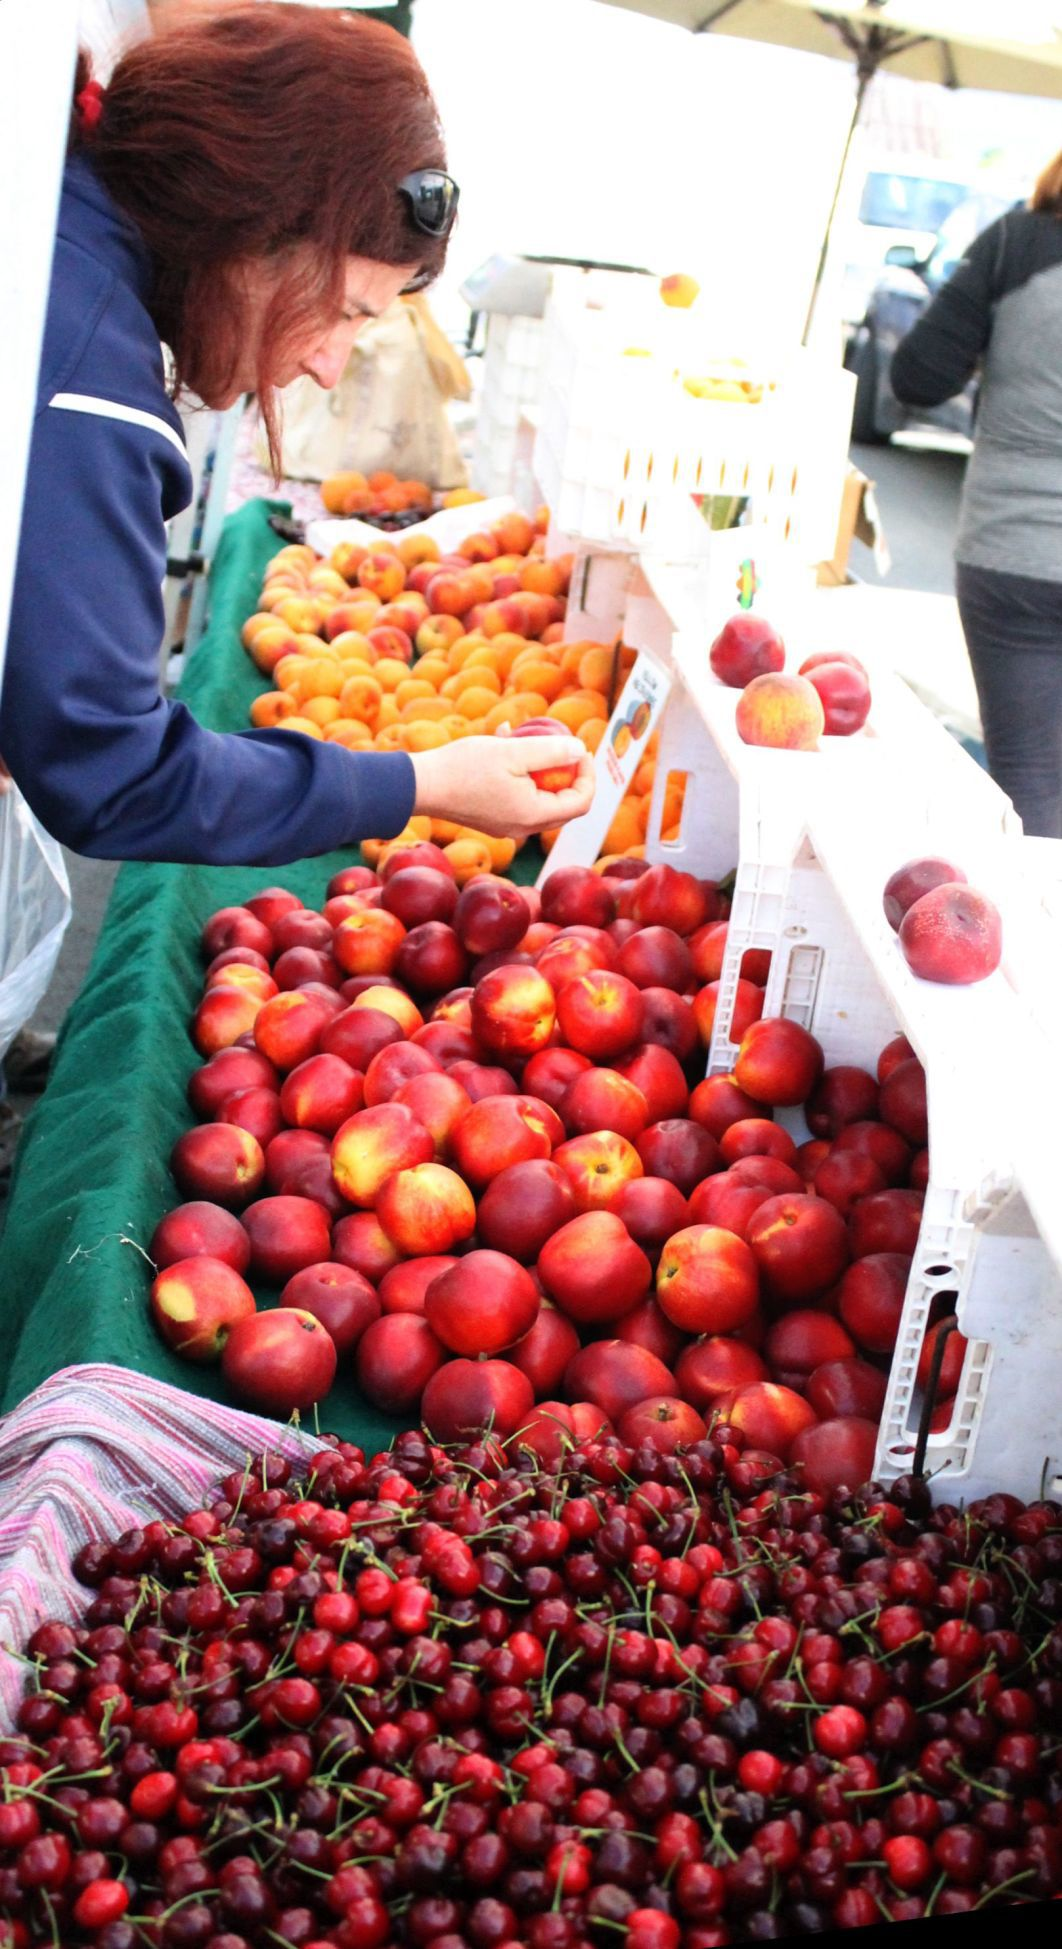 Stone fruit at the Farmers' Market